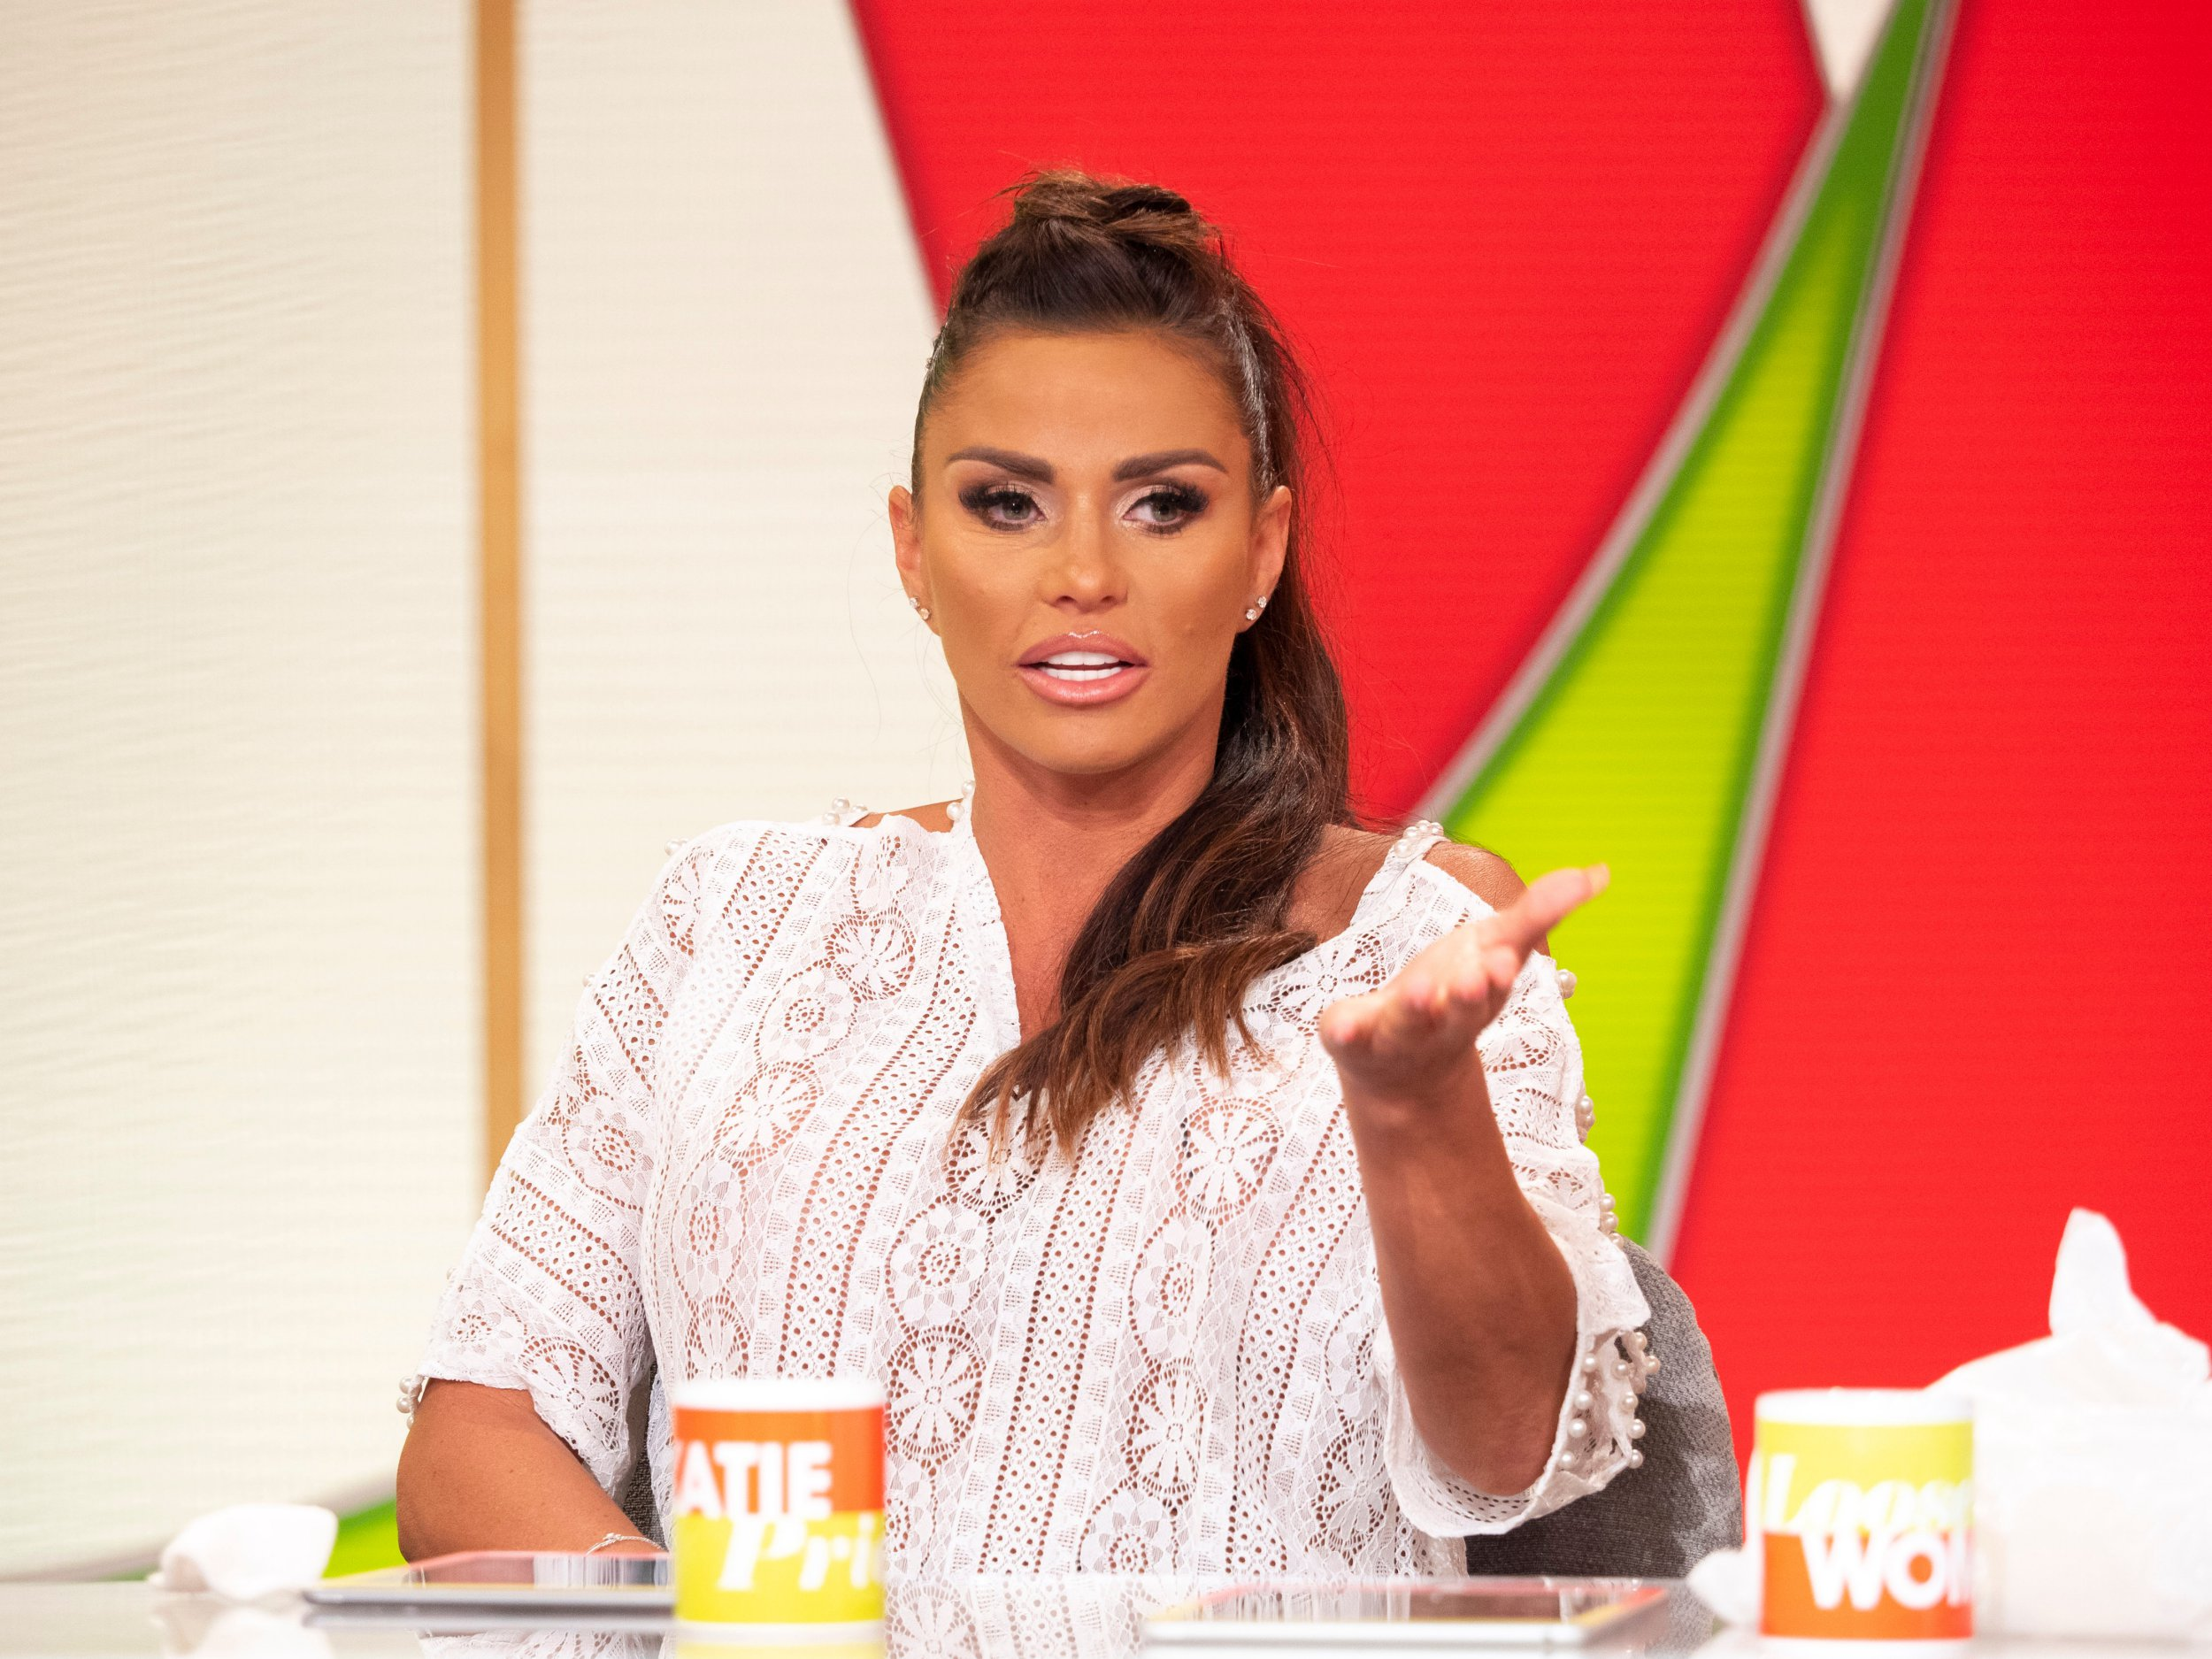 Katie Price returning to Loose Women tomorrow for explosive first interview since driving ban